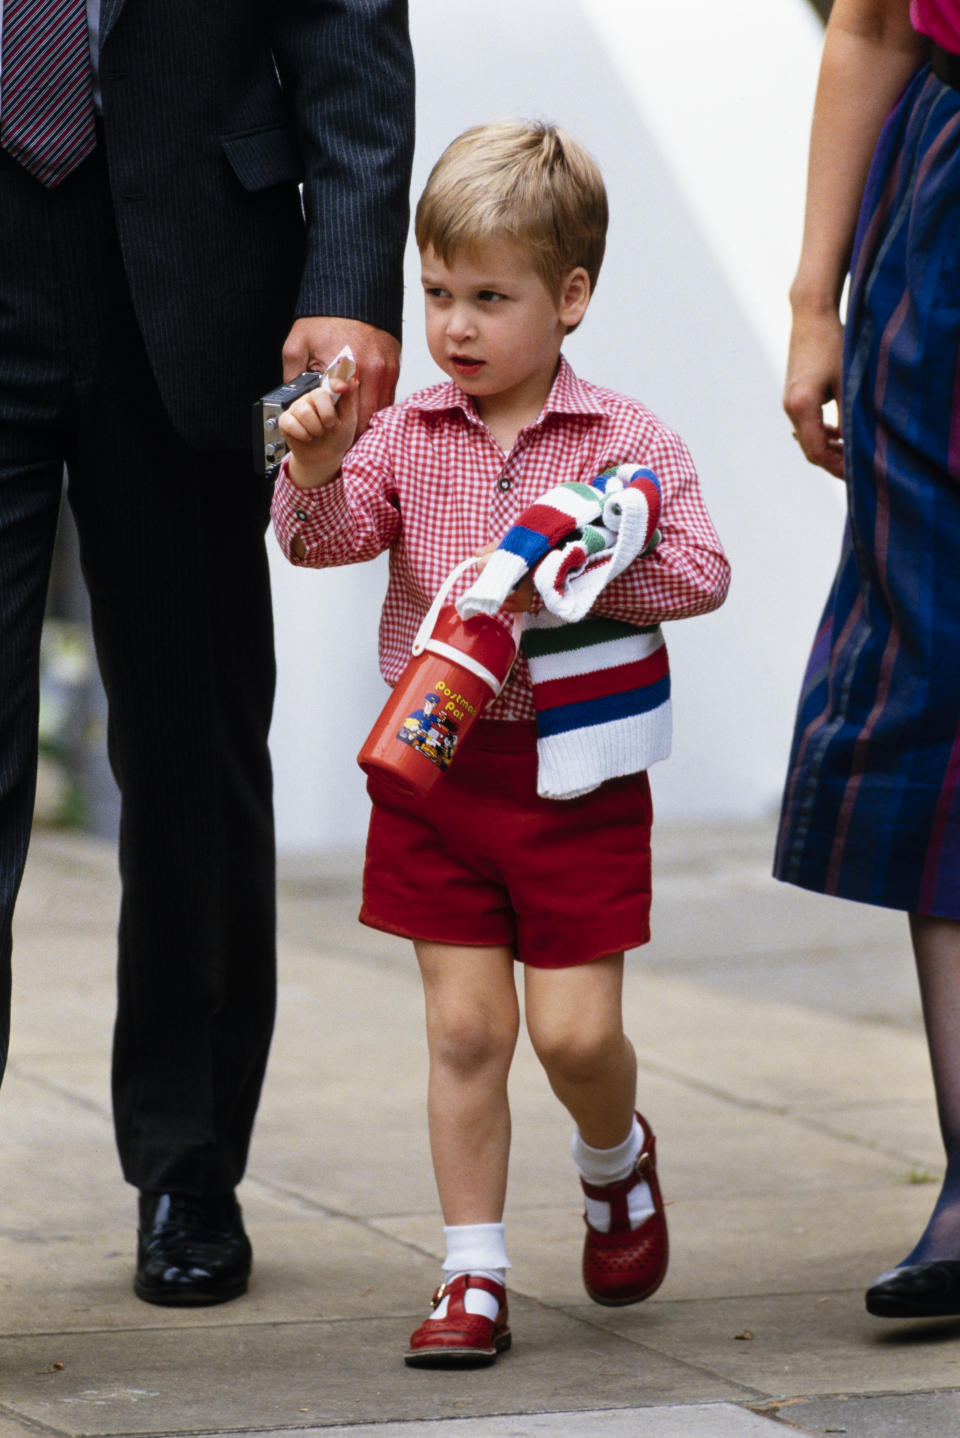 Levenson also photograpged Prince William on his first day at nursery school in 1985. (David Levenson/Getty Images)